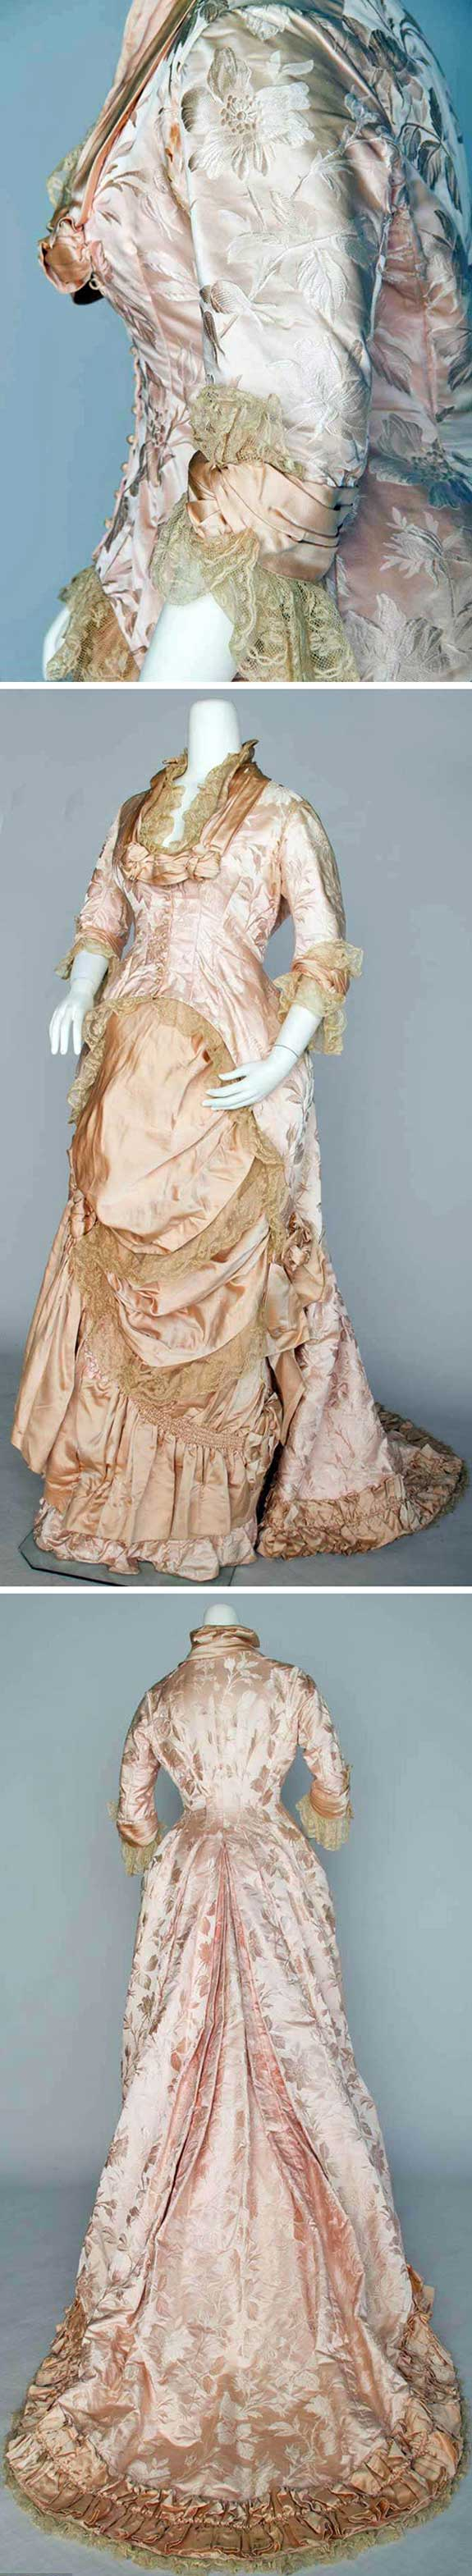 Pink reception gown, ca. 1880s. One piece, with long fitted bodice, & trained skirt. Pink satin and Valenciennes lace trim. Augusta Auctions